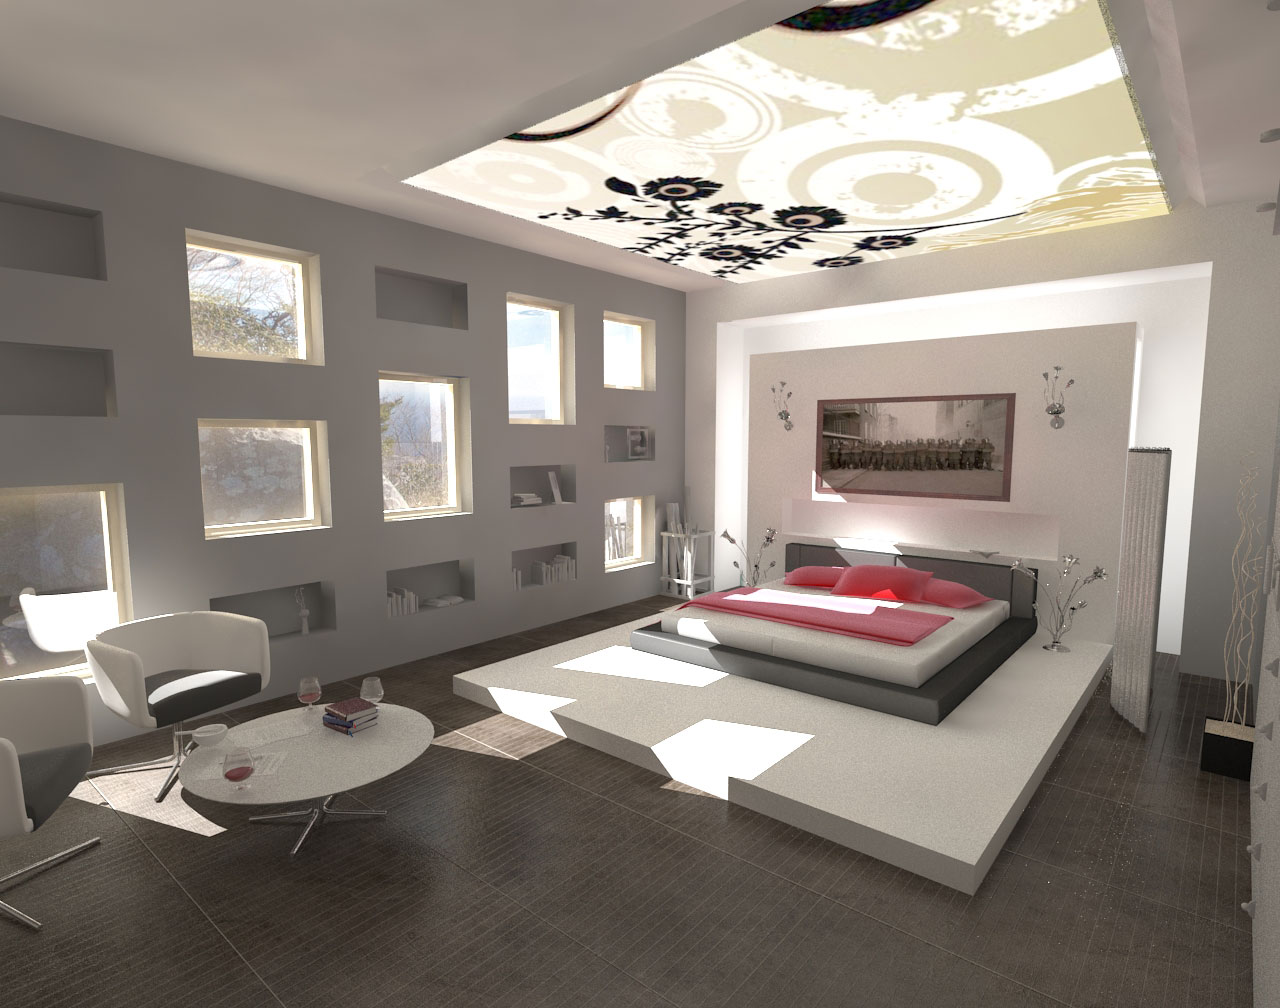 Decorations minimalist design modern bedroom interior for Minimalist items for home